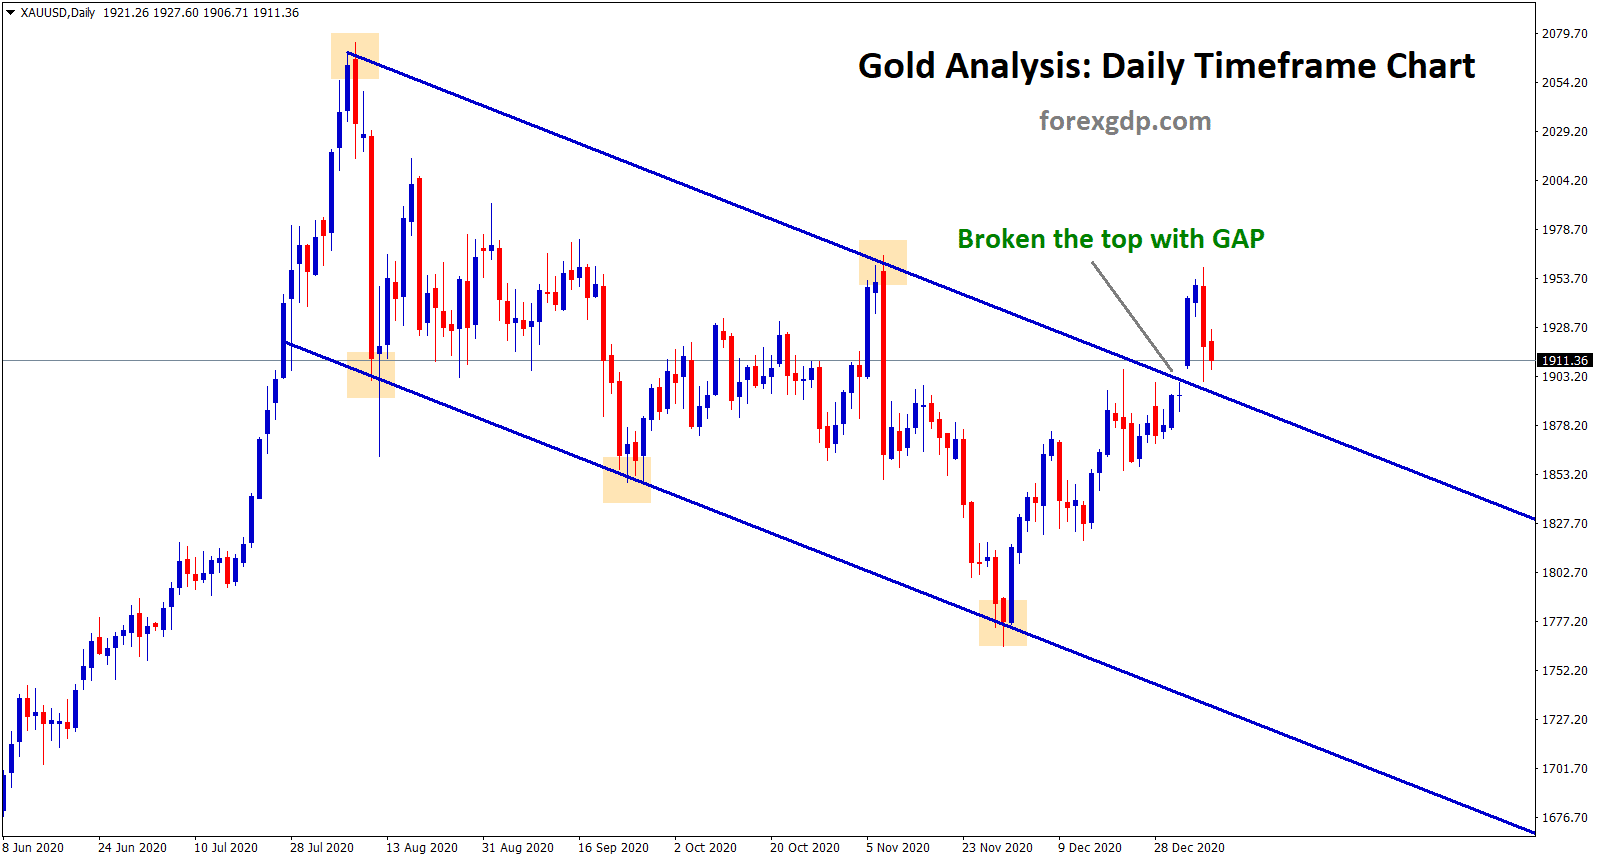 gold broken the top of the channel with gap